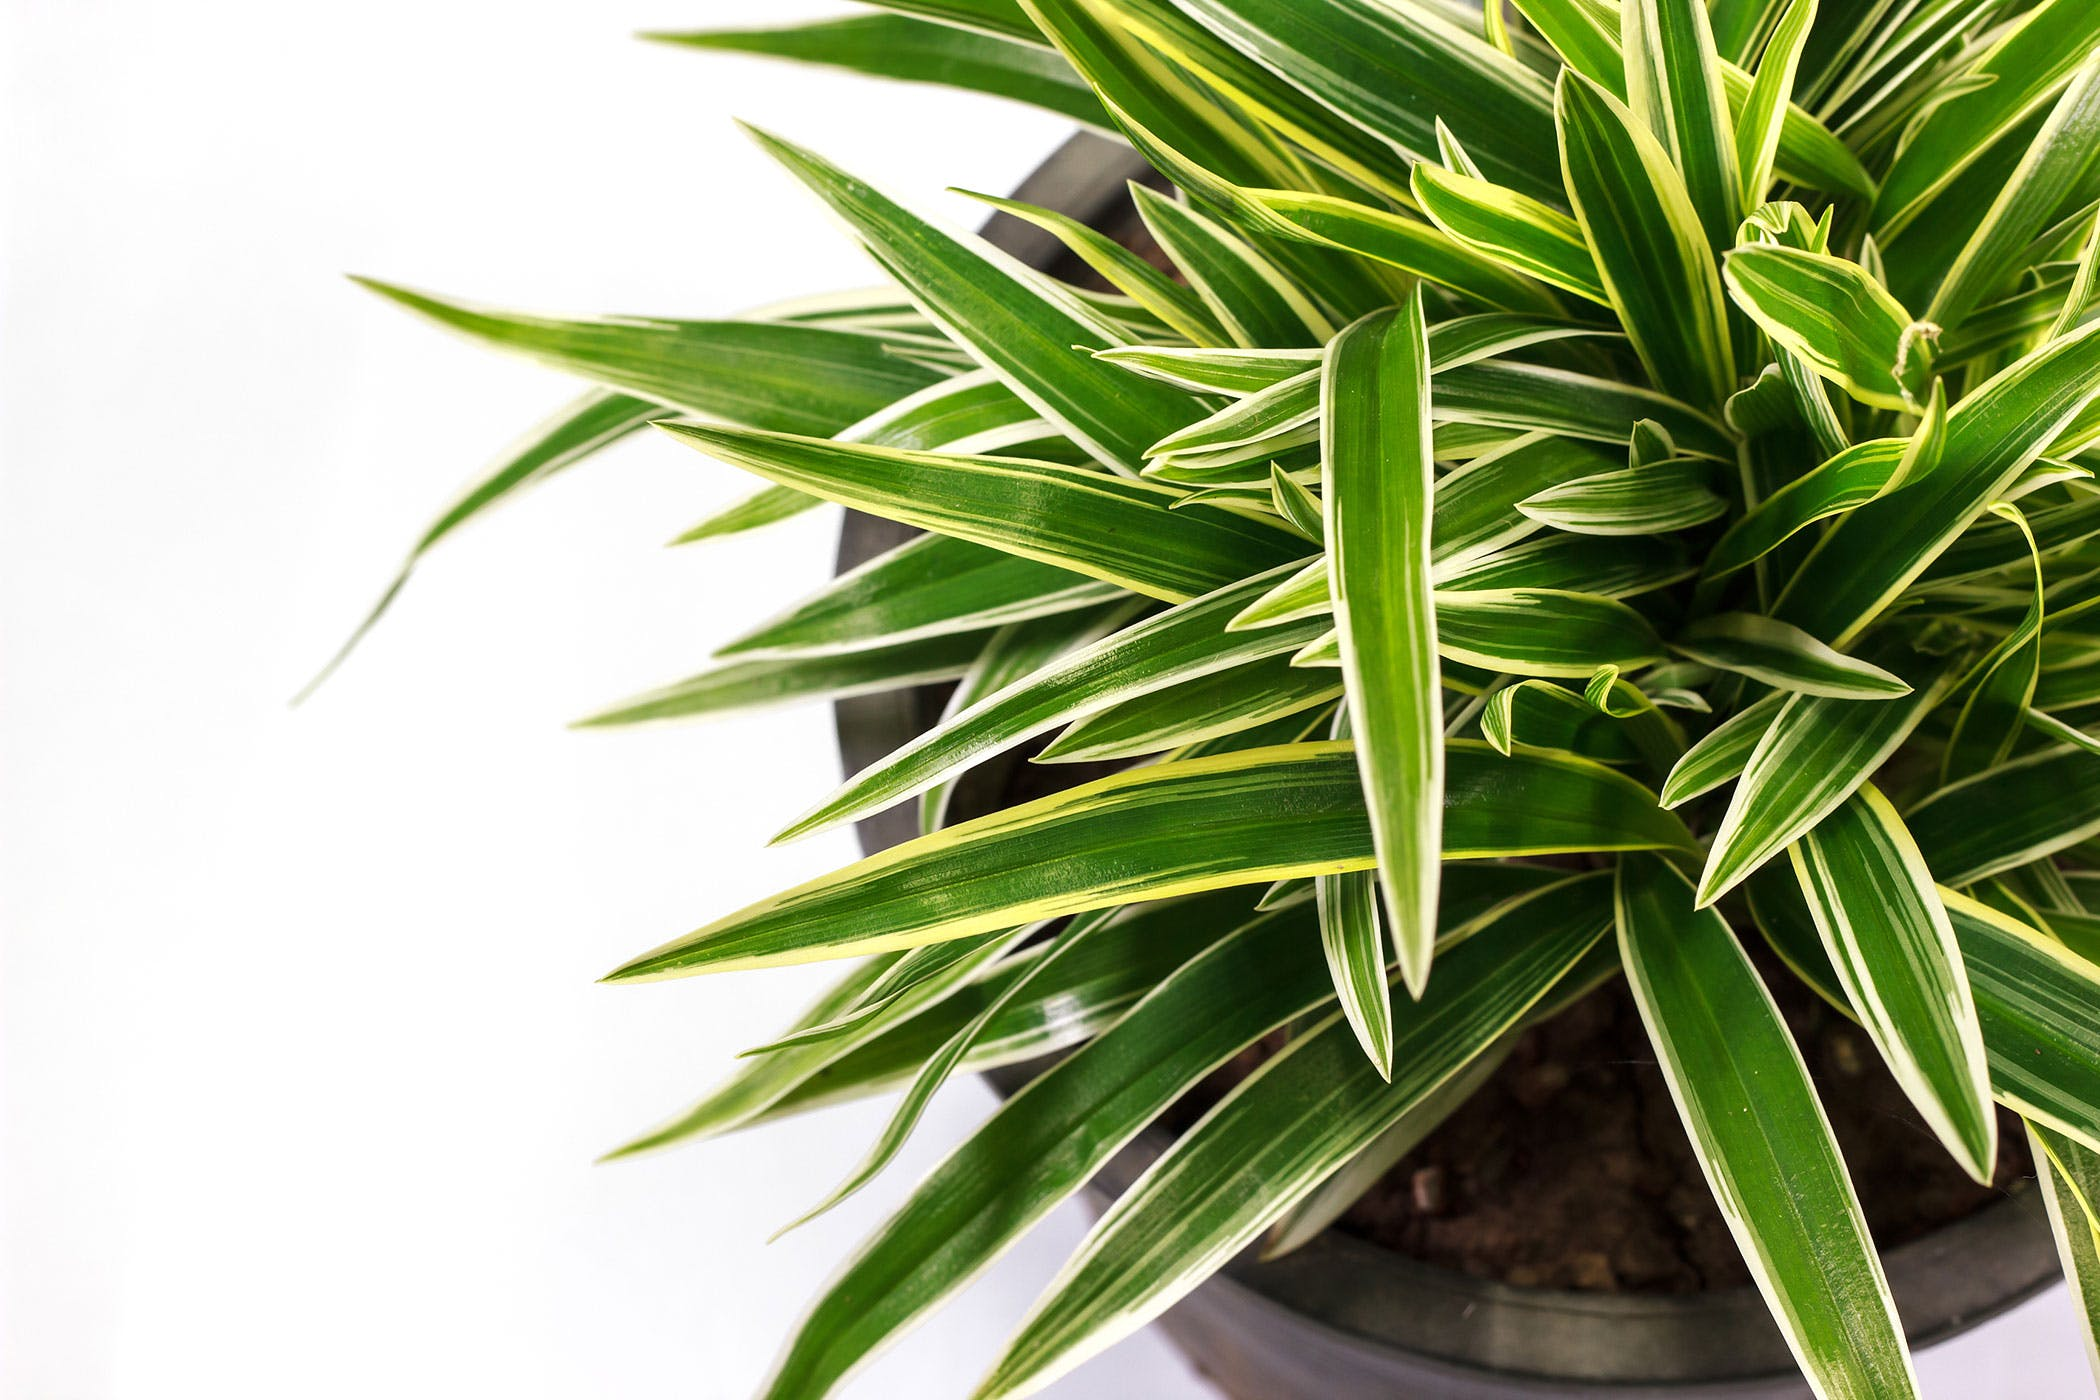 Breeding dracaena at home 10